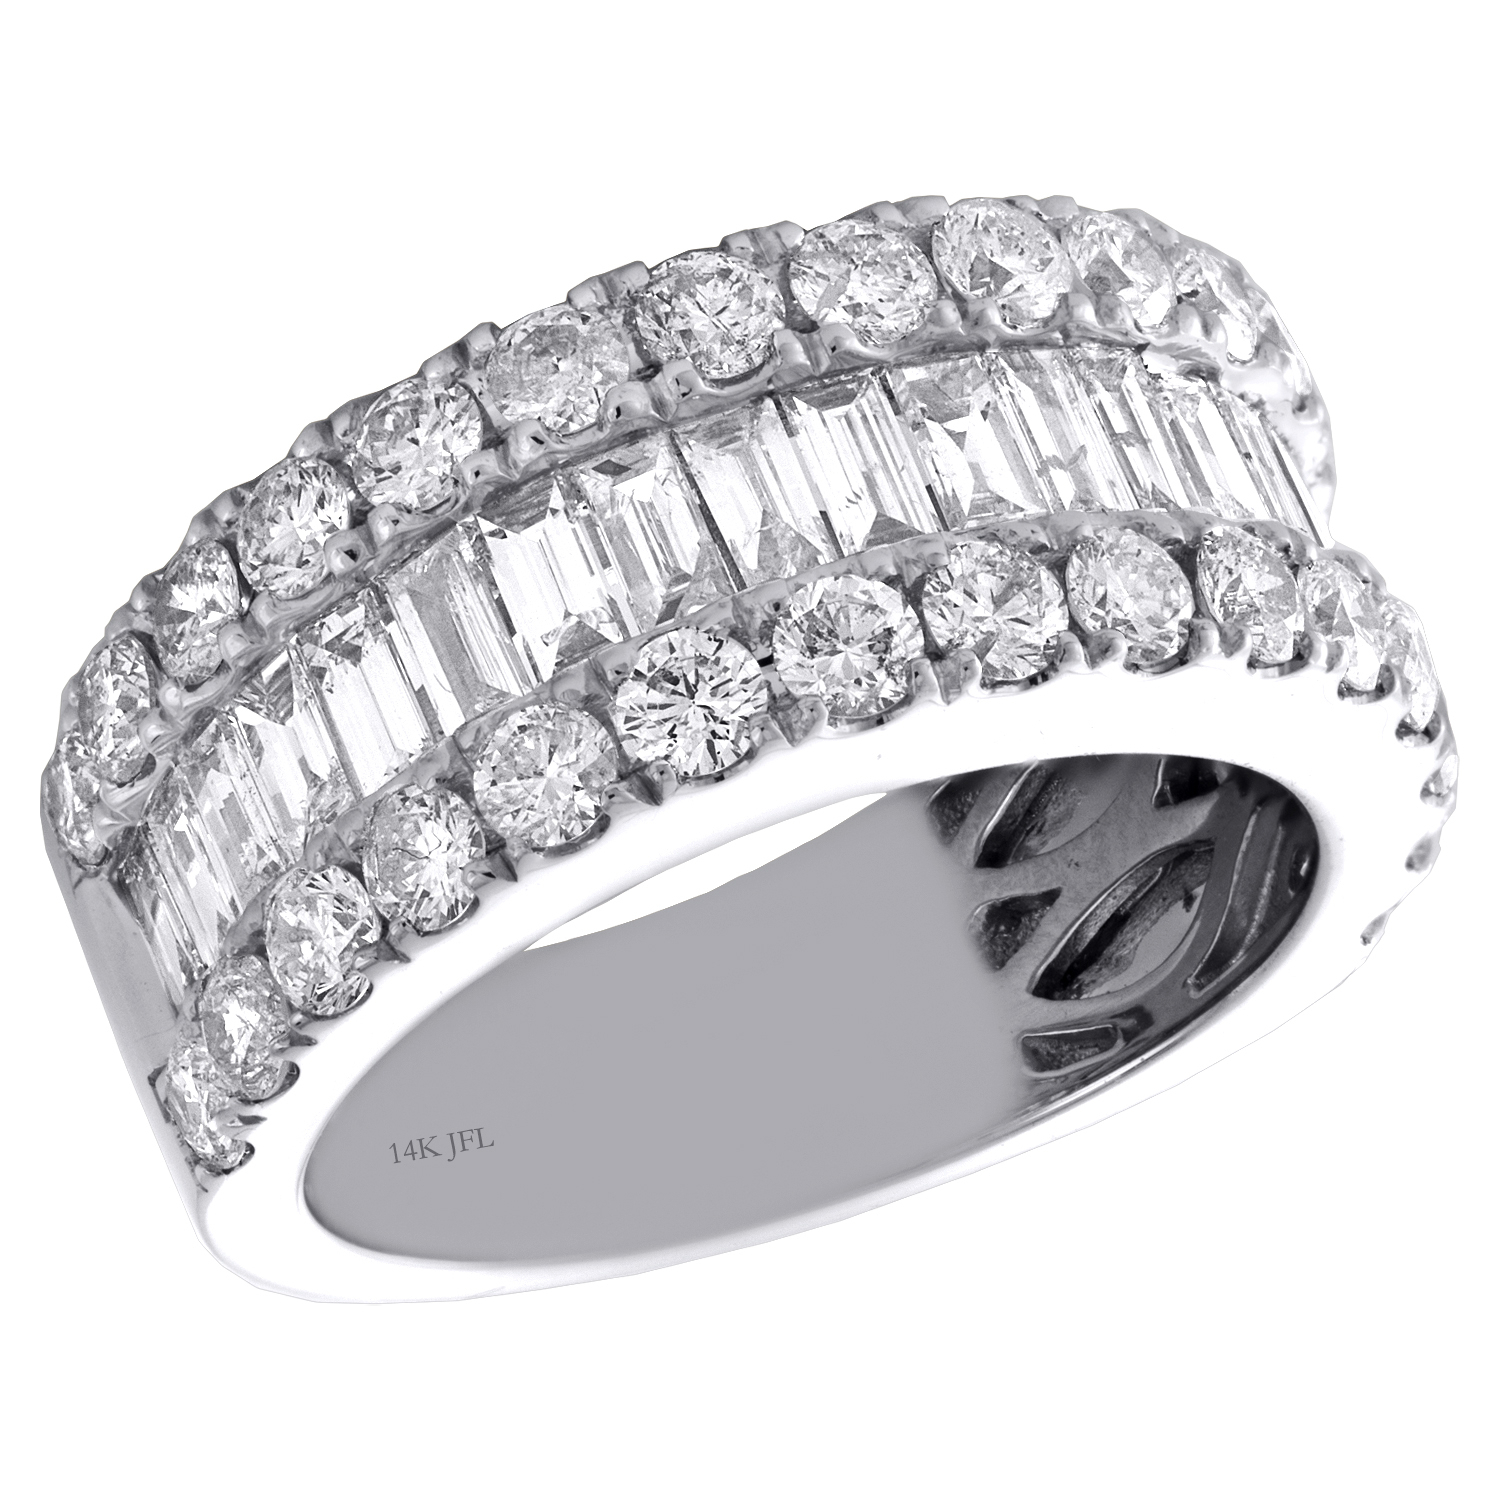 14K White Gold Tapered Baguette & Round Diamond 3 Row With Regard To Latest Baguette And Round Diamond Alternating Bar Anniversary Bands In White Gold (View 4 of 25)